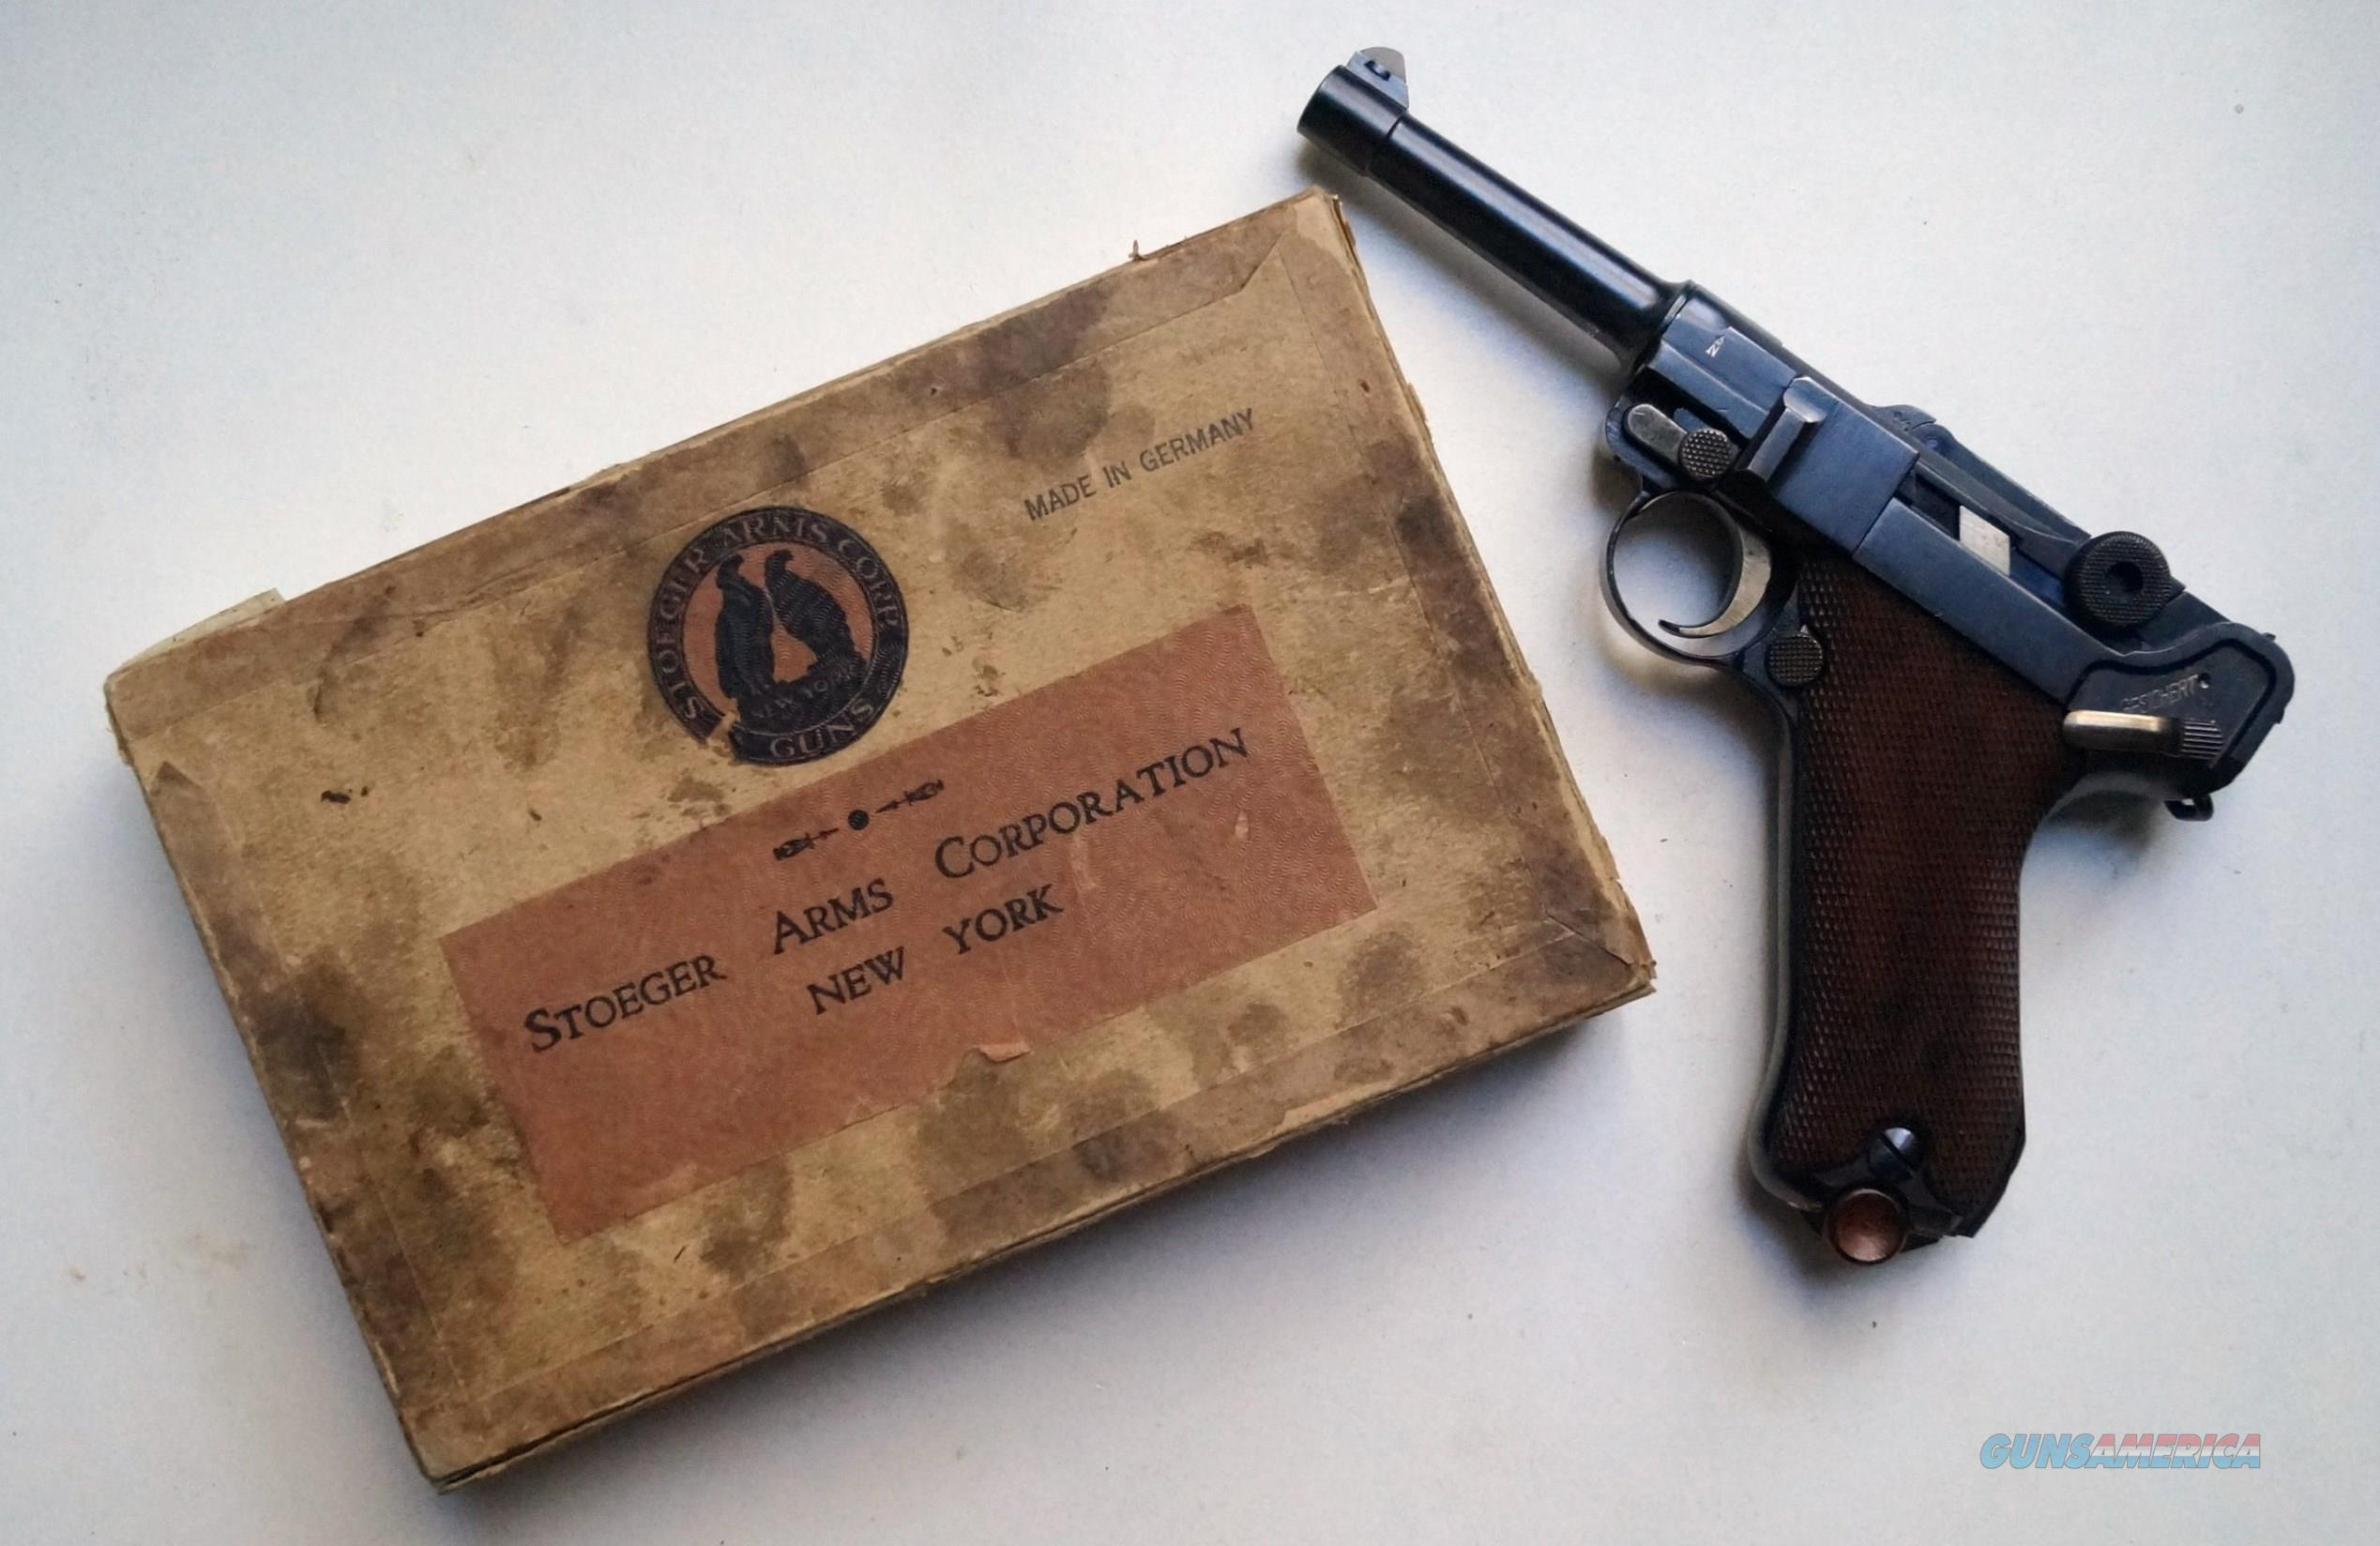 1920 A.F. STOEGER GERMAN LUGER - COLLECTOR CONDITION - WITH ORIGINAL BOX  Guns > Pistols > Luger Pistols